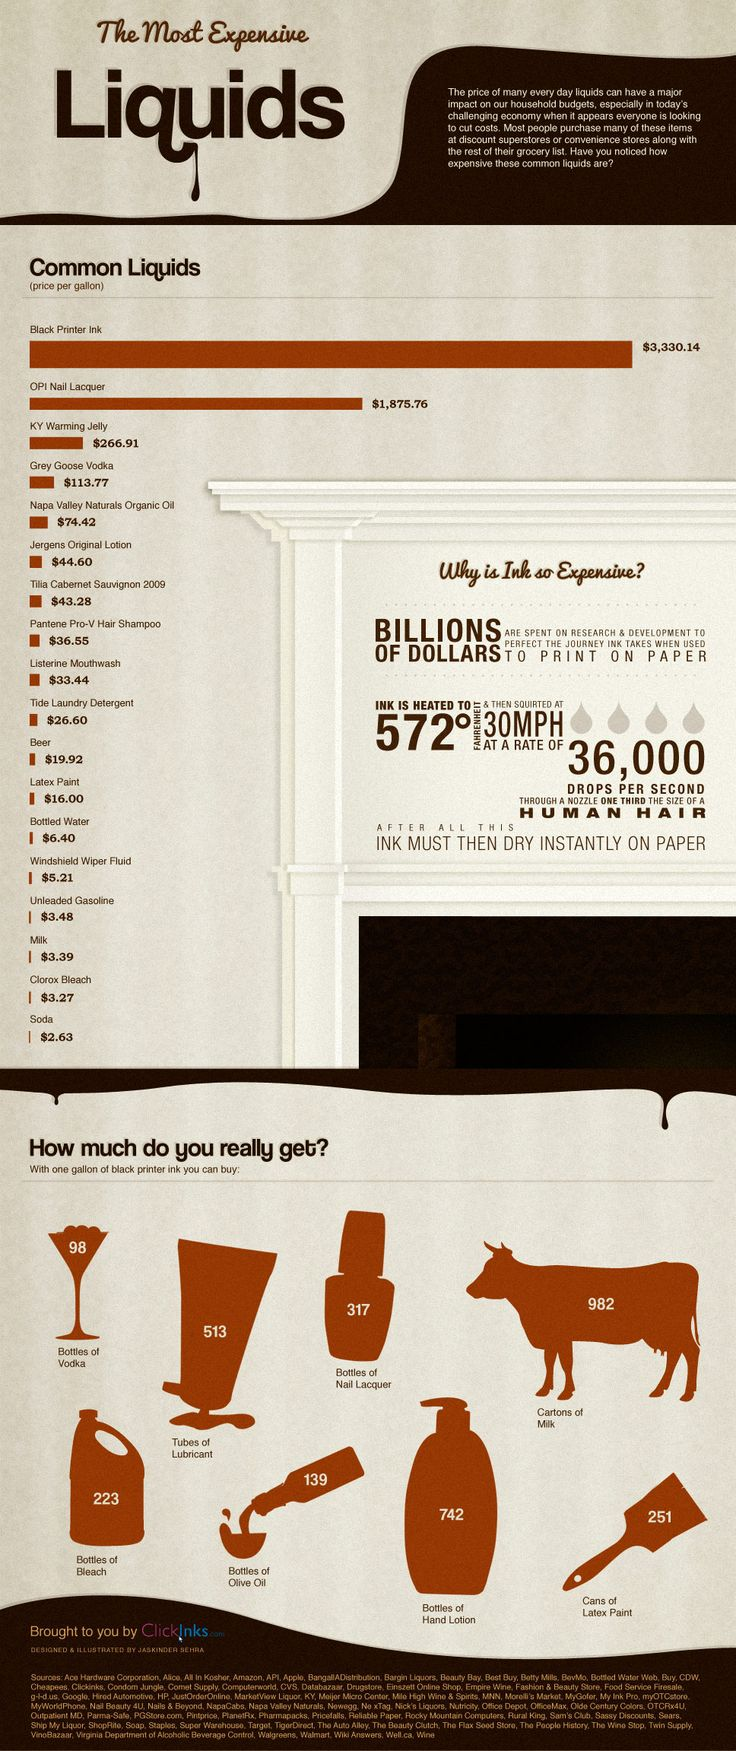 Most expensive liquid? PRINTER INK! Infographic